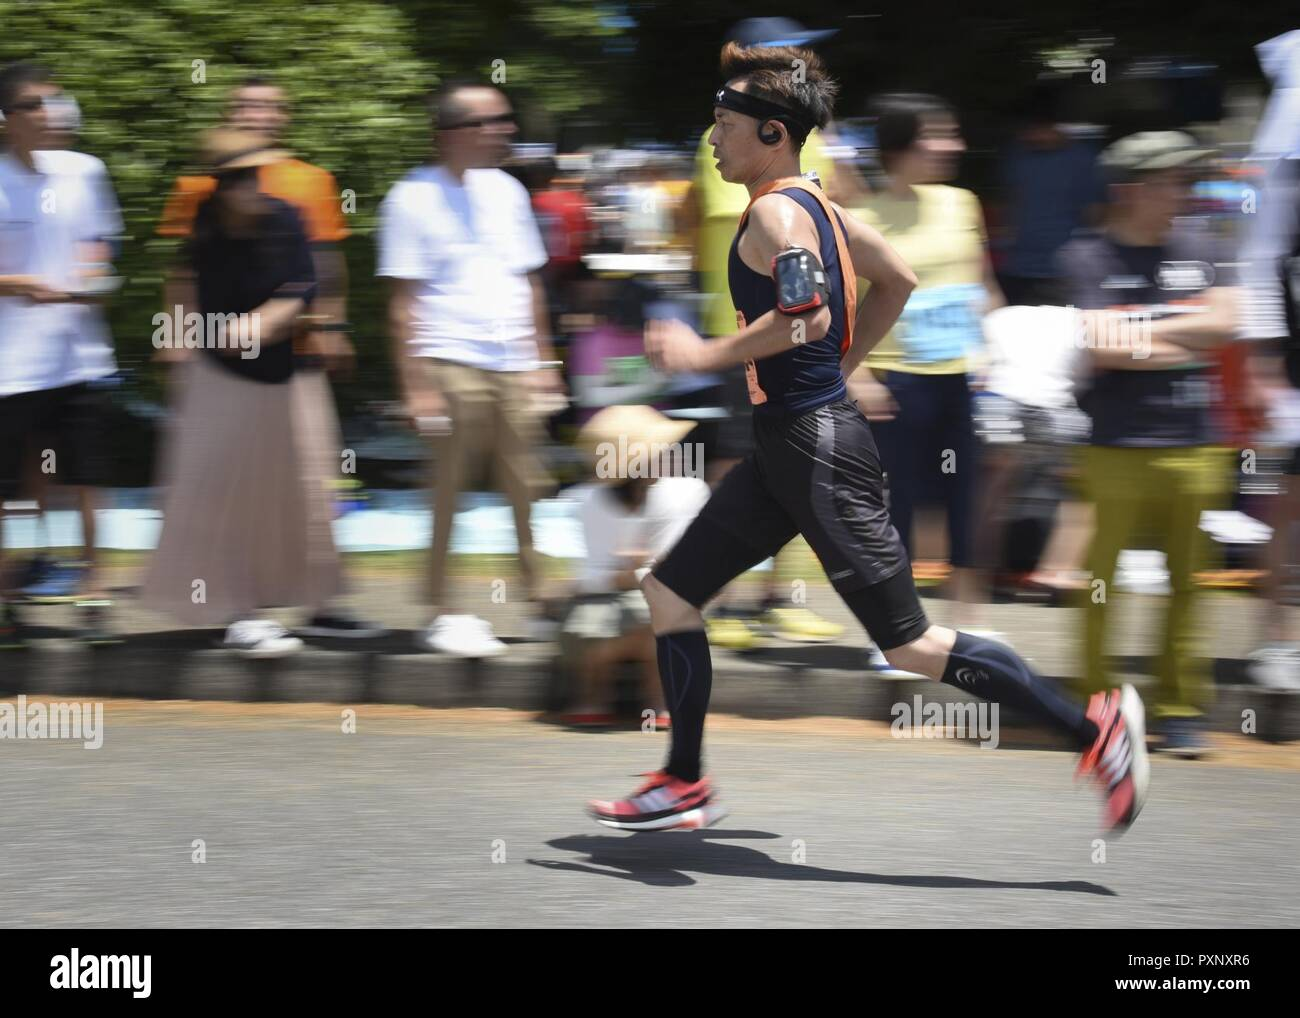 A participant runs the Ekiden Race at Yokota Air Base, Japan, June 4, 2017. More than 5,000 runners participated in the event hosted by the Yokota Striders Running Club. - Stock Image